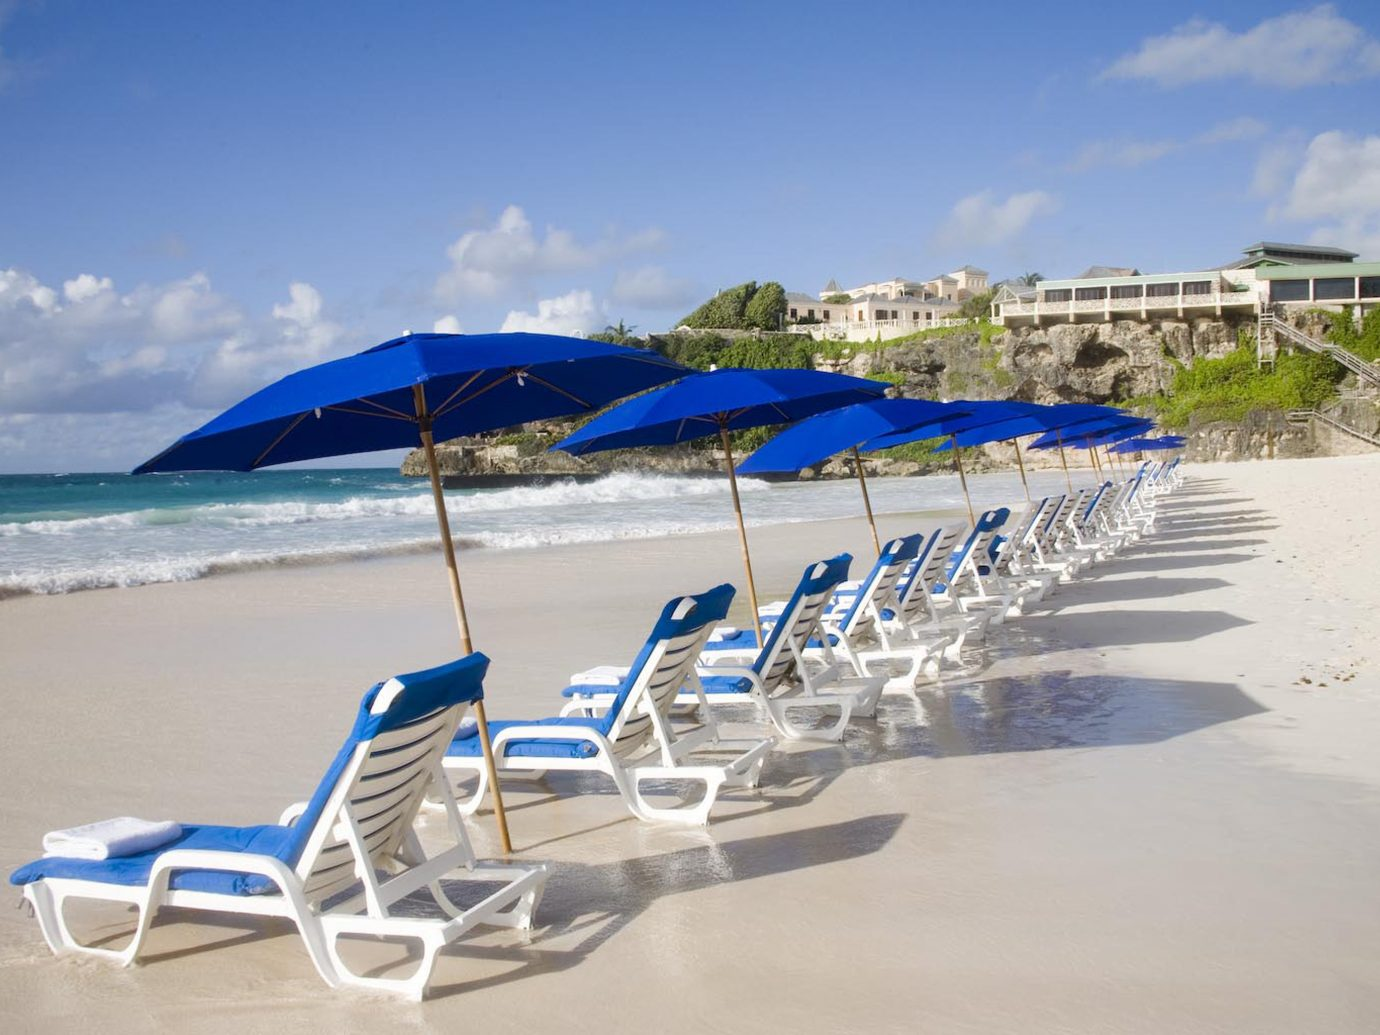 All-Inclusive Resorts Beach Beachfront Grounds Hotels Play Resort Scenic views Trip Ideas sky outdoor umbrella chair shore Sea Ocean Nature Coast vacation marina blue vehicle caribbean dock bay wind accessory day sandy